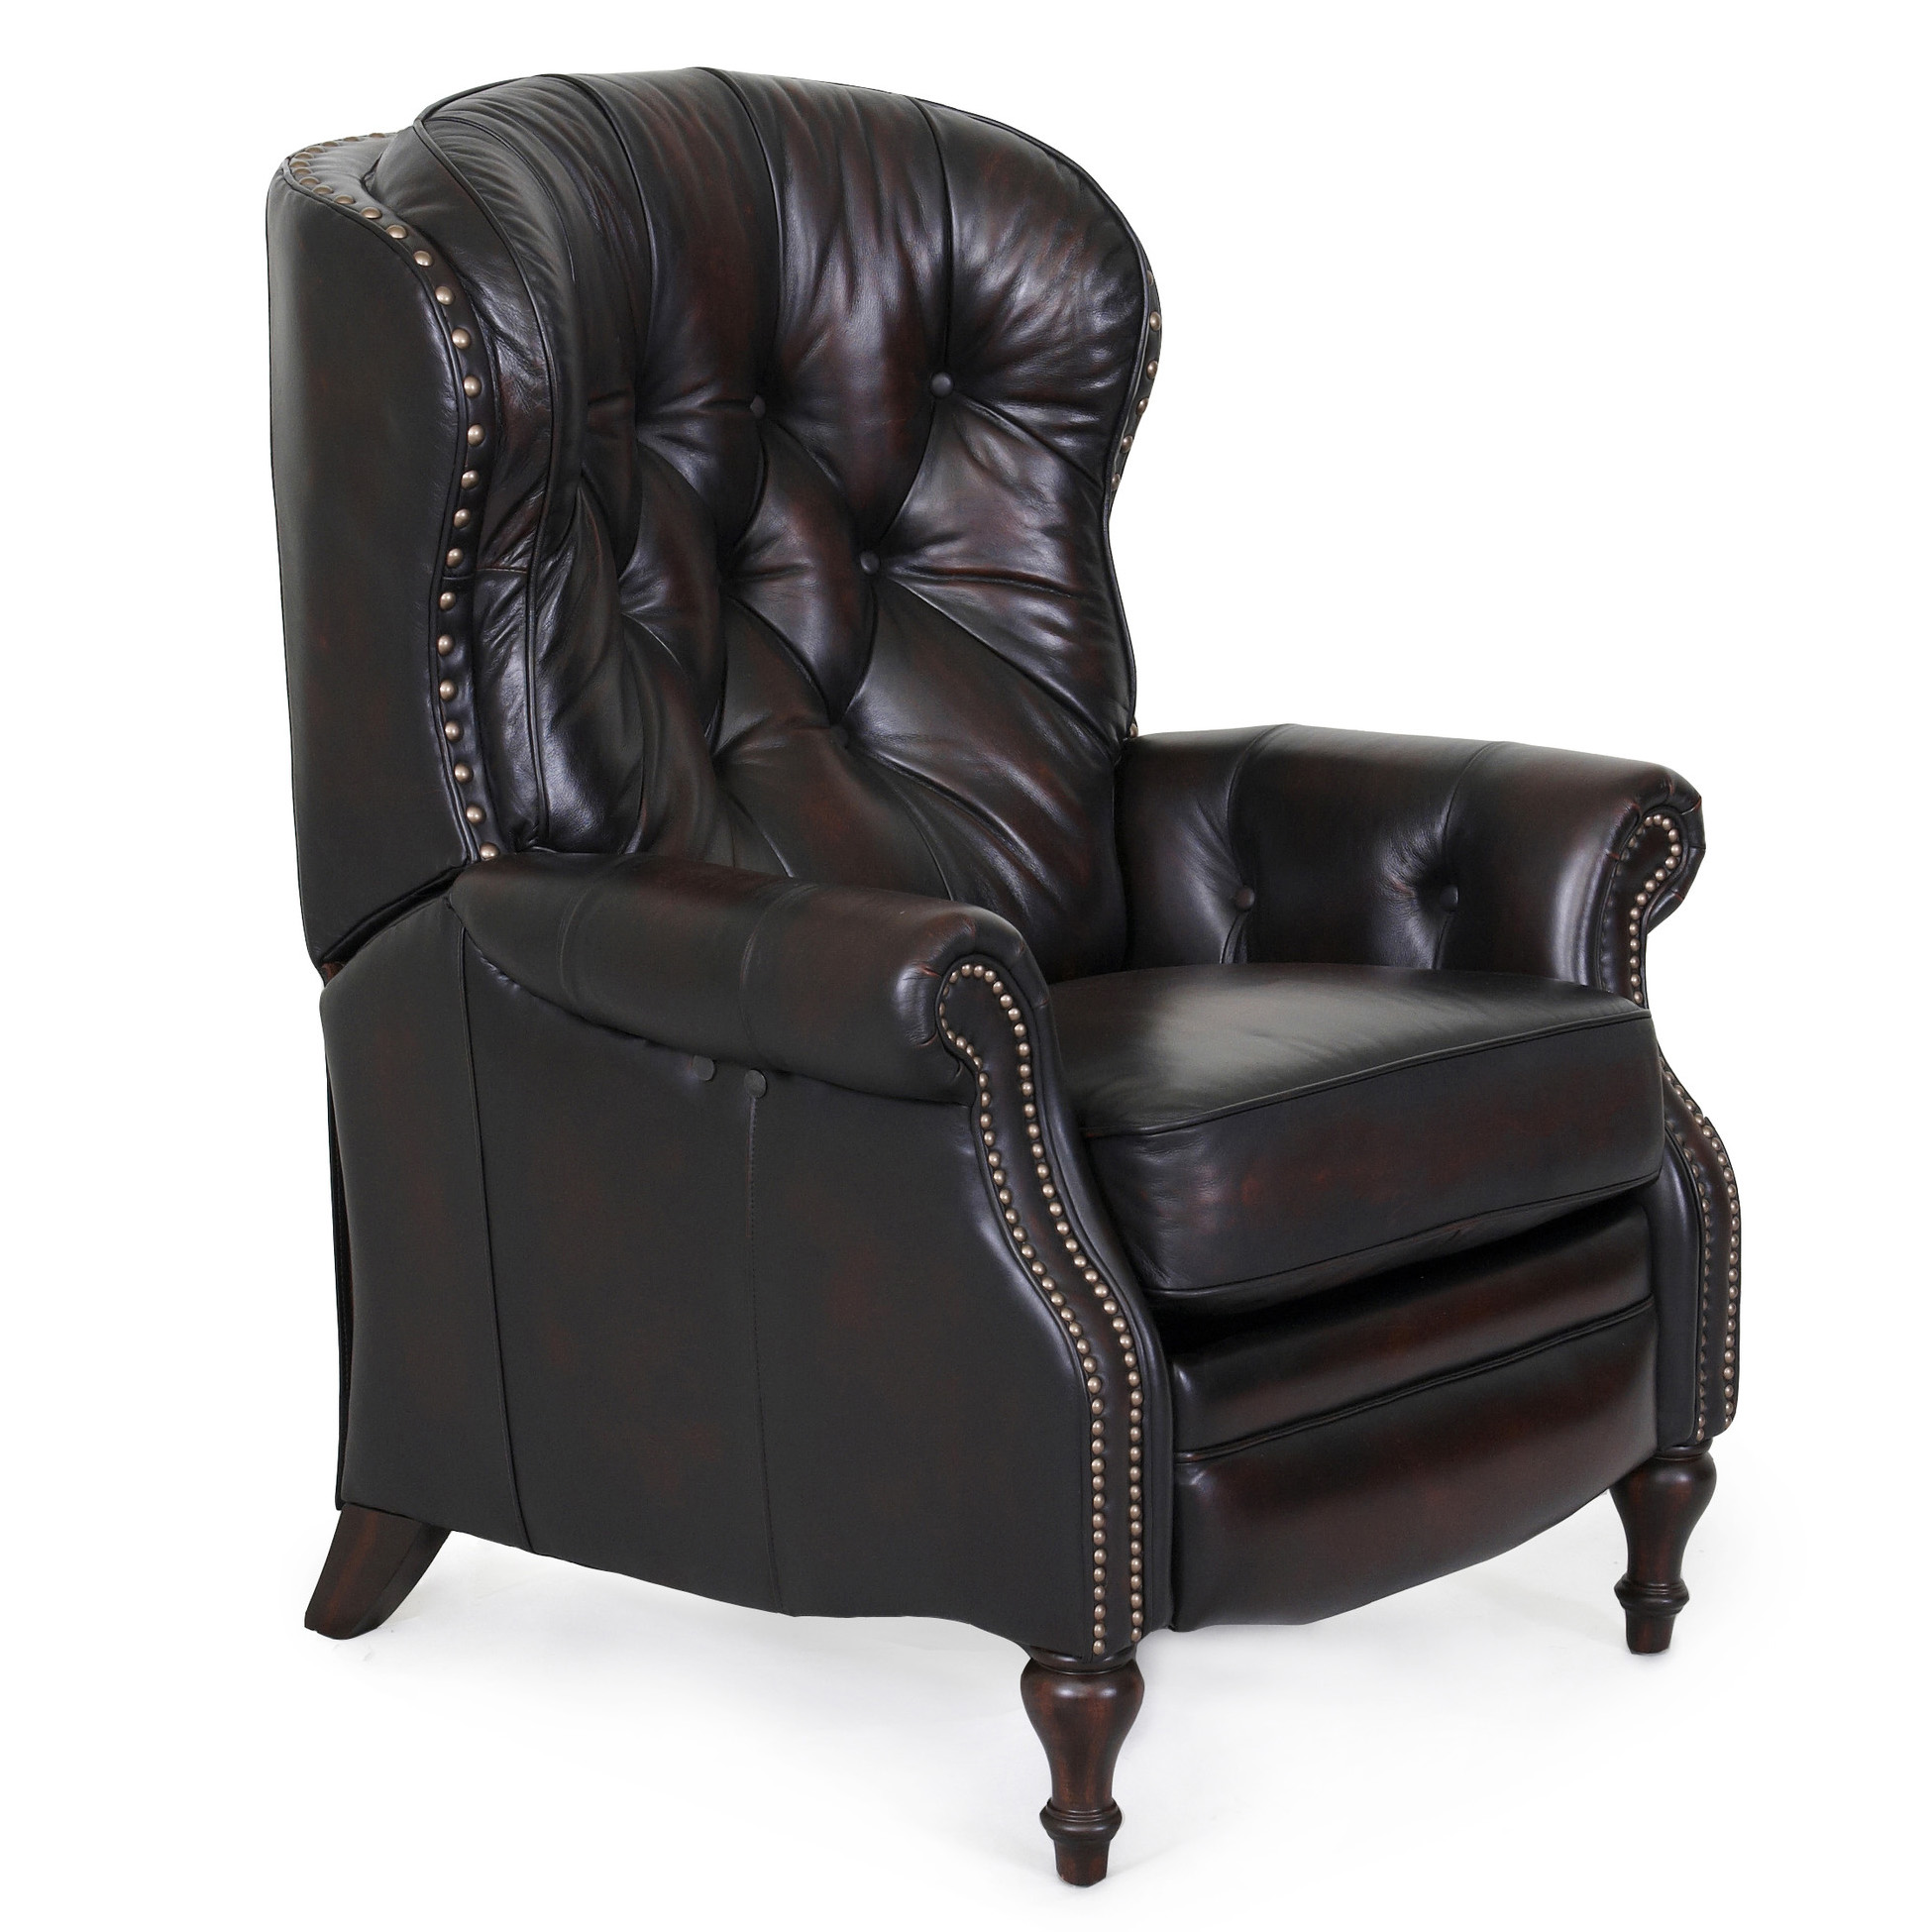 Barcalounger Kendall II Recliner Chair Leather Recliner Chair Furniture L